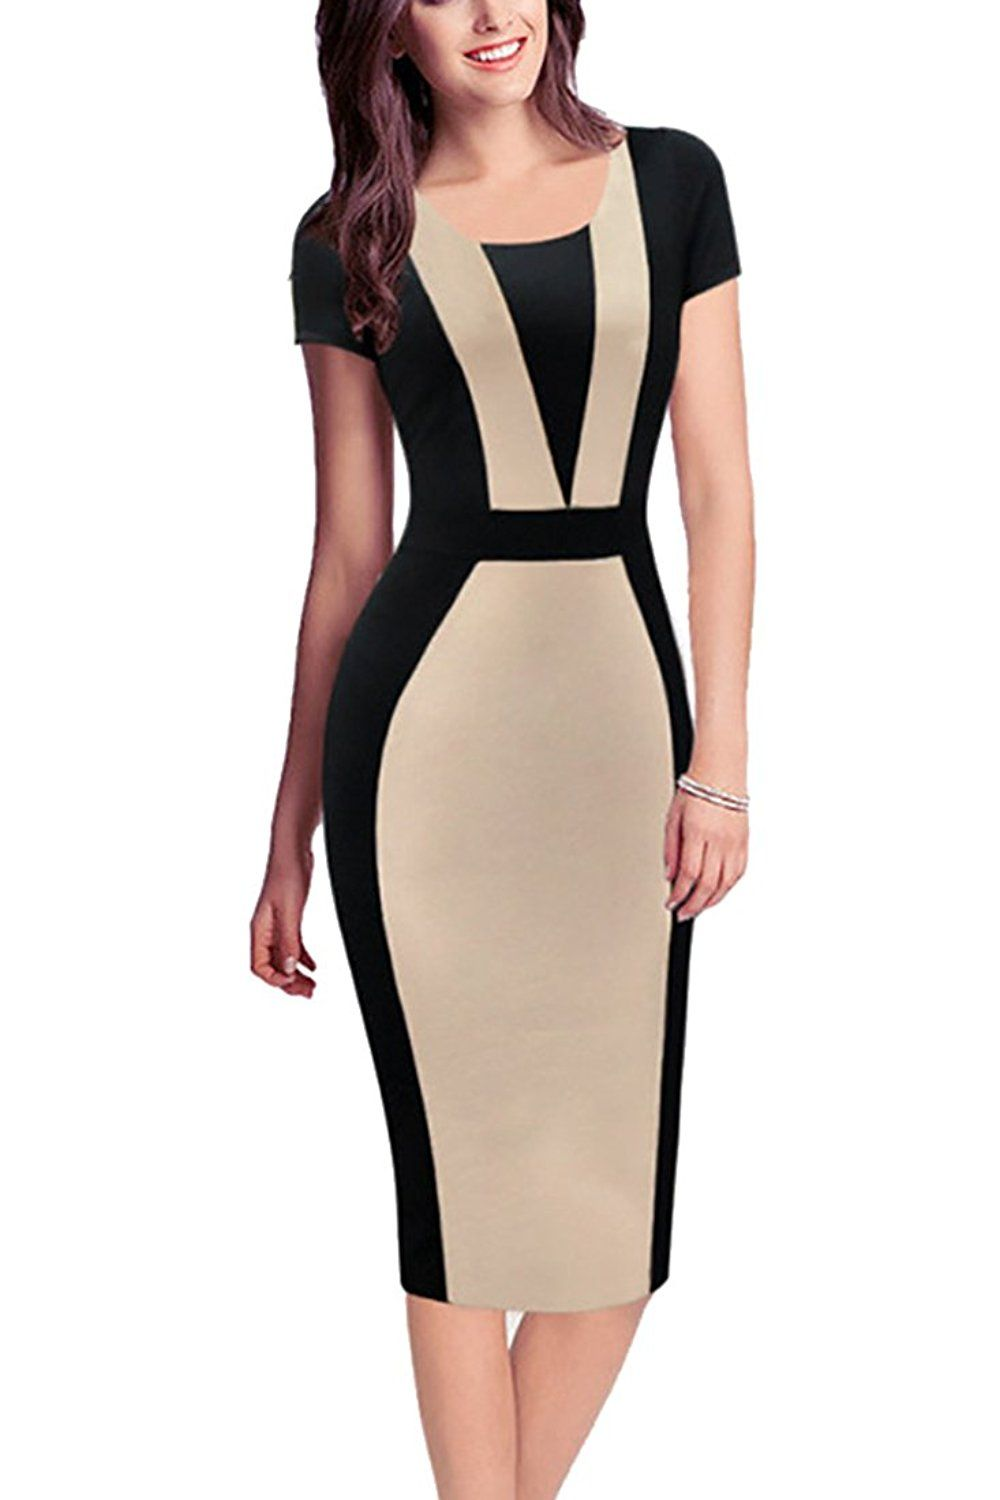 bb7645d5dc743 REPHYLLIS Women Summer Round Neck Business Working Cocktail Party Bodycon  Dress * This is an Amazon Affiliate link. Check out this great product.